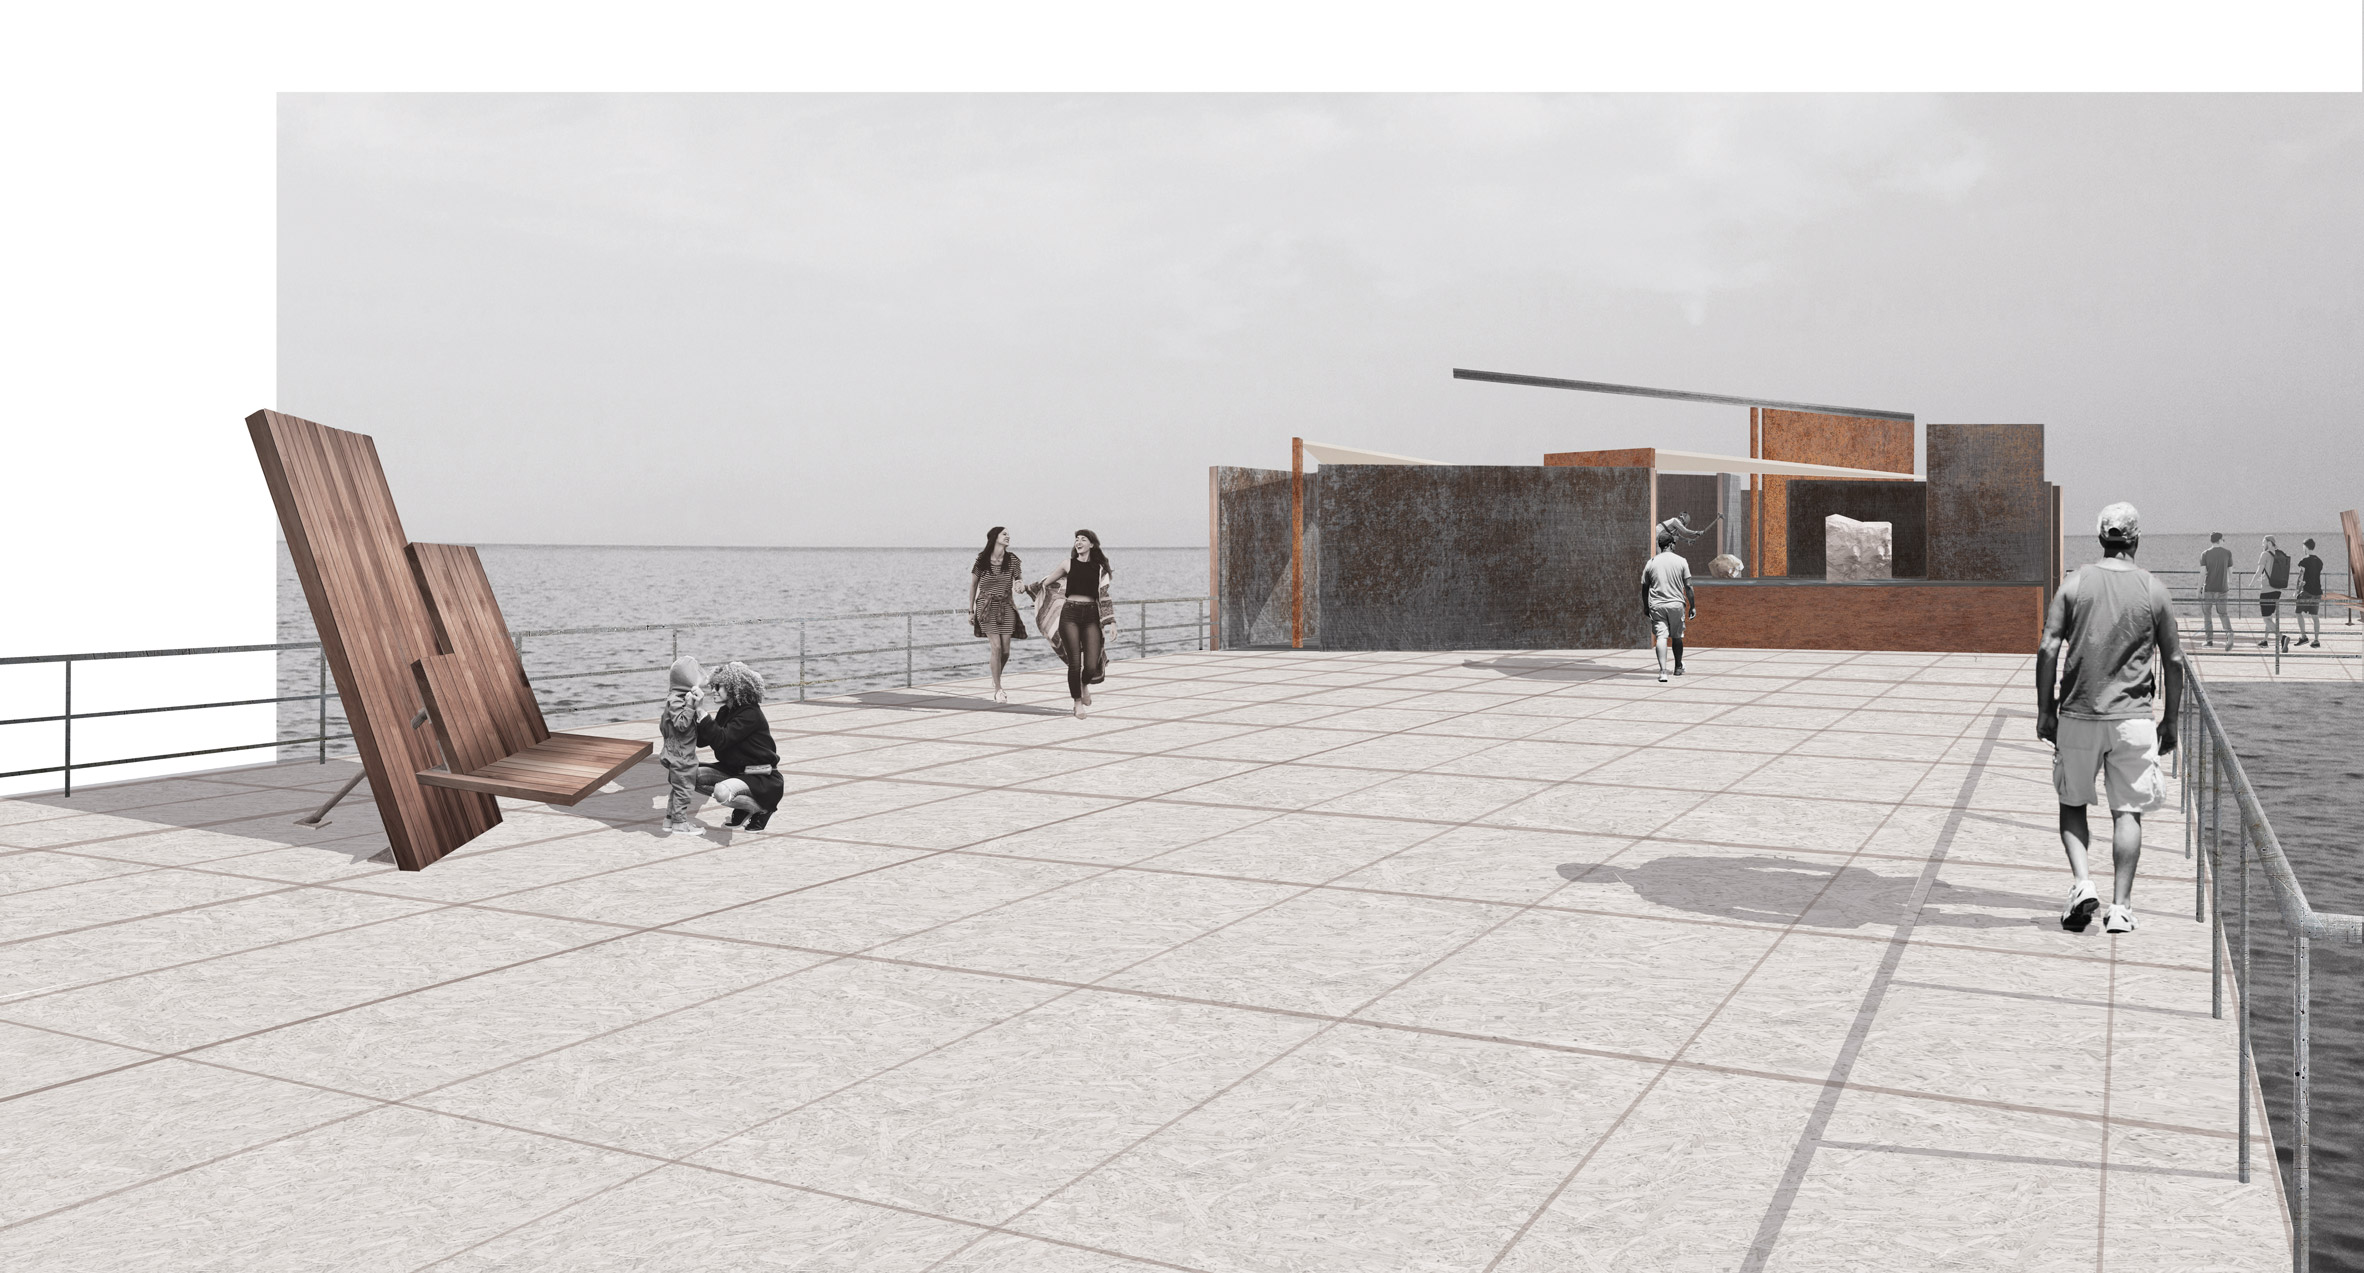 17 award-winning projects from University of Brighton students